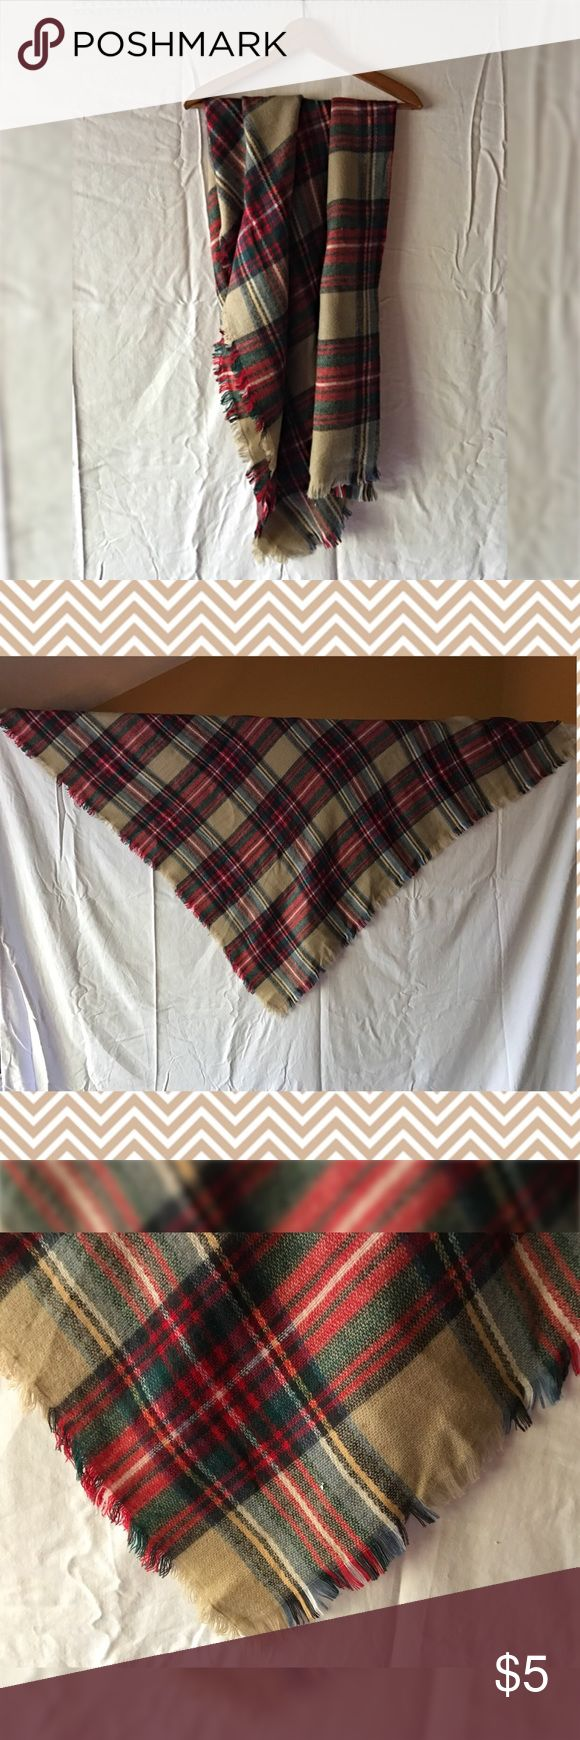 Large red plaid blanket scarf Lovely warm red and cream plaid blanket scarf. Huge! Synthetic fiber blend. Never worn! Accessories Scarves & Wraps